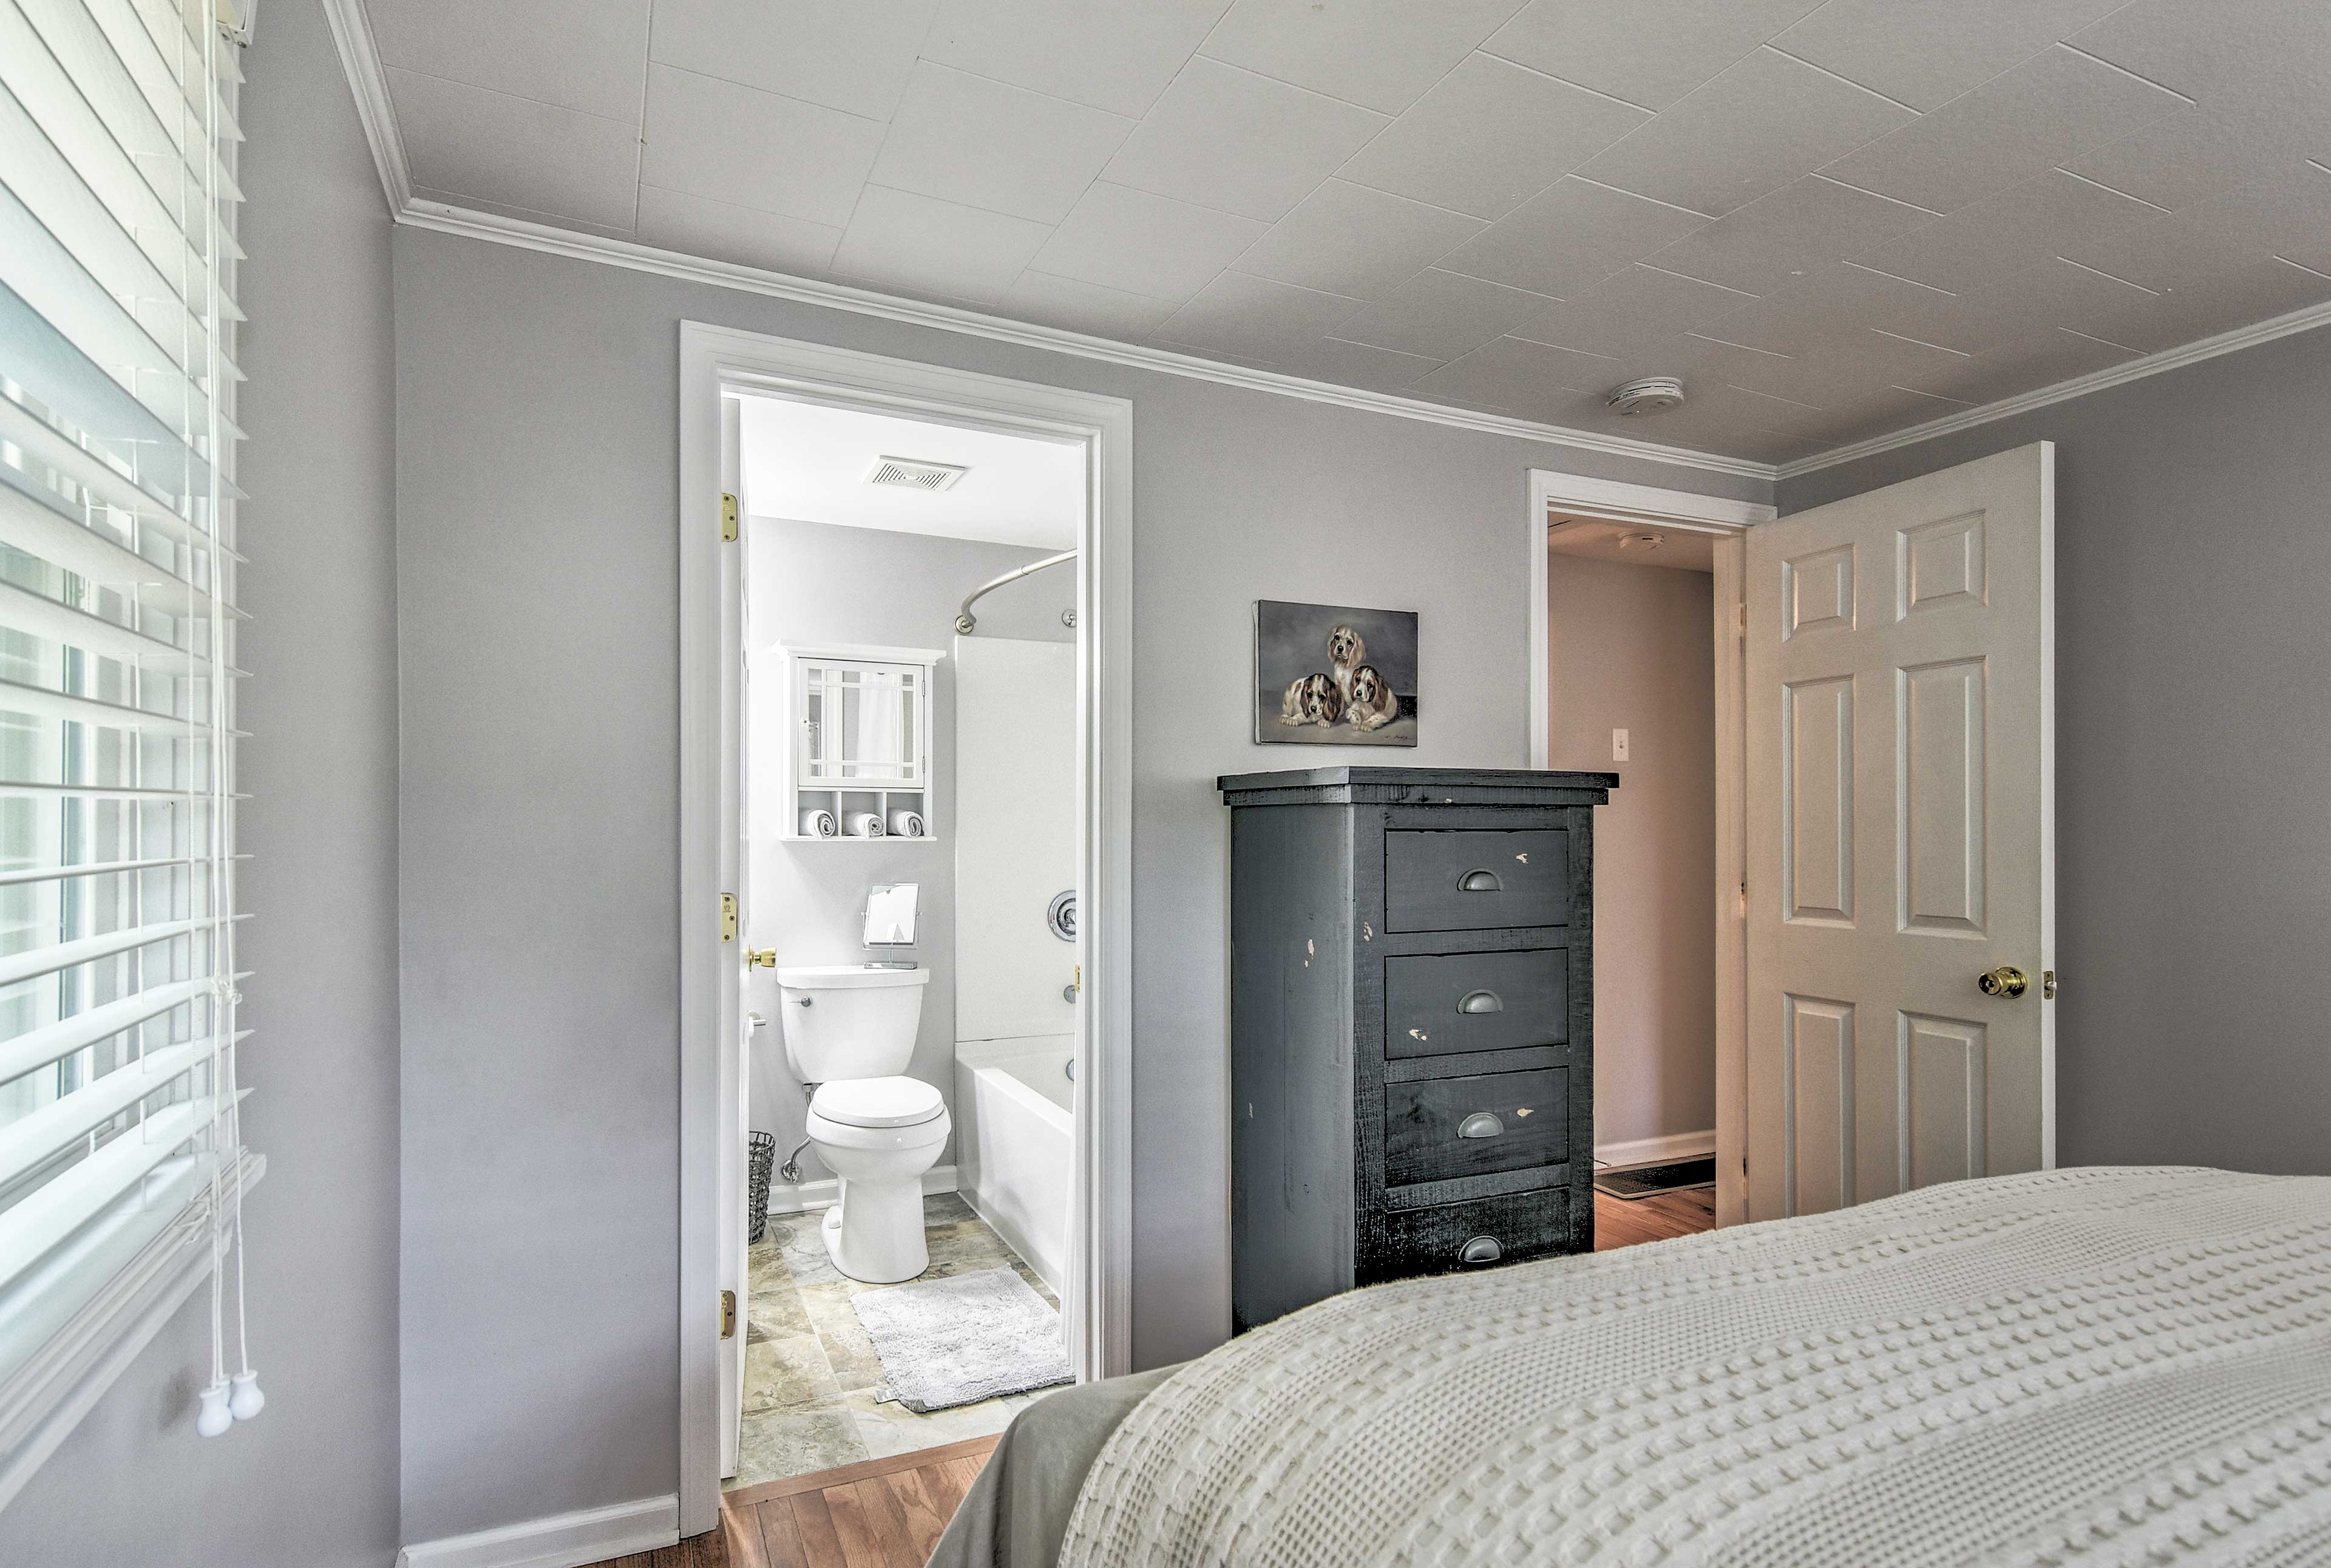 Enjoy the added convenience of a full en-suite bathroom.